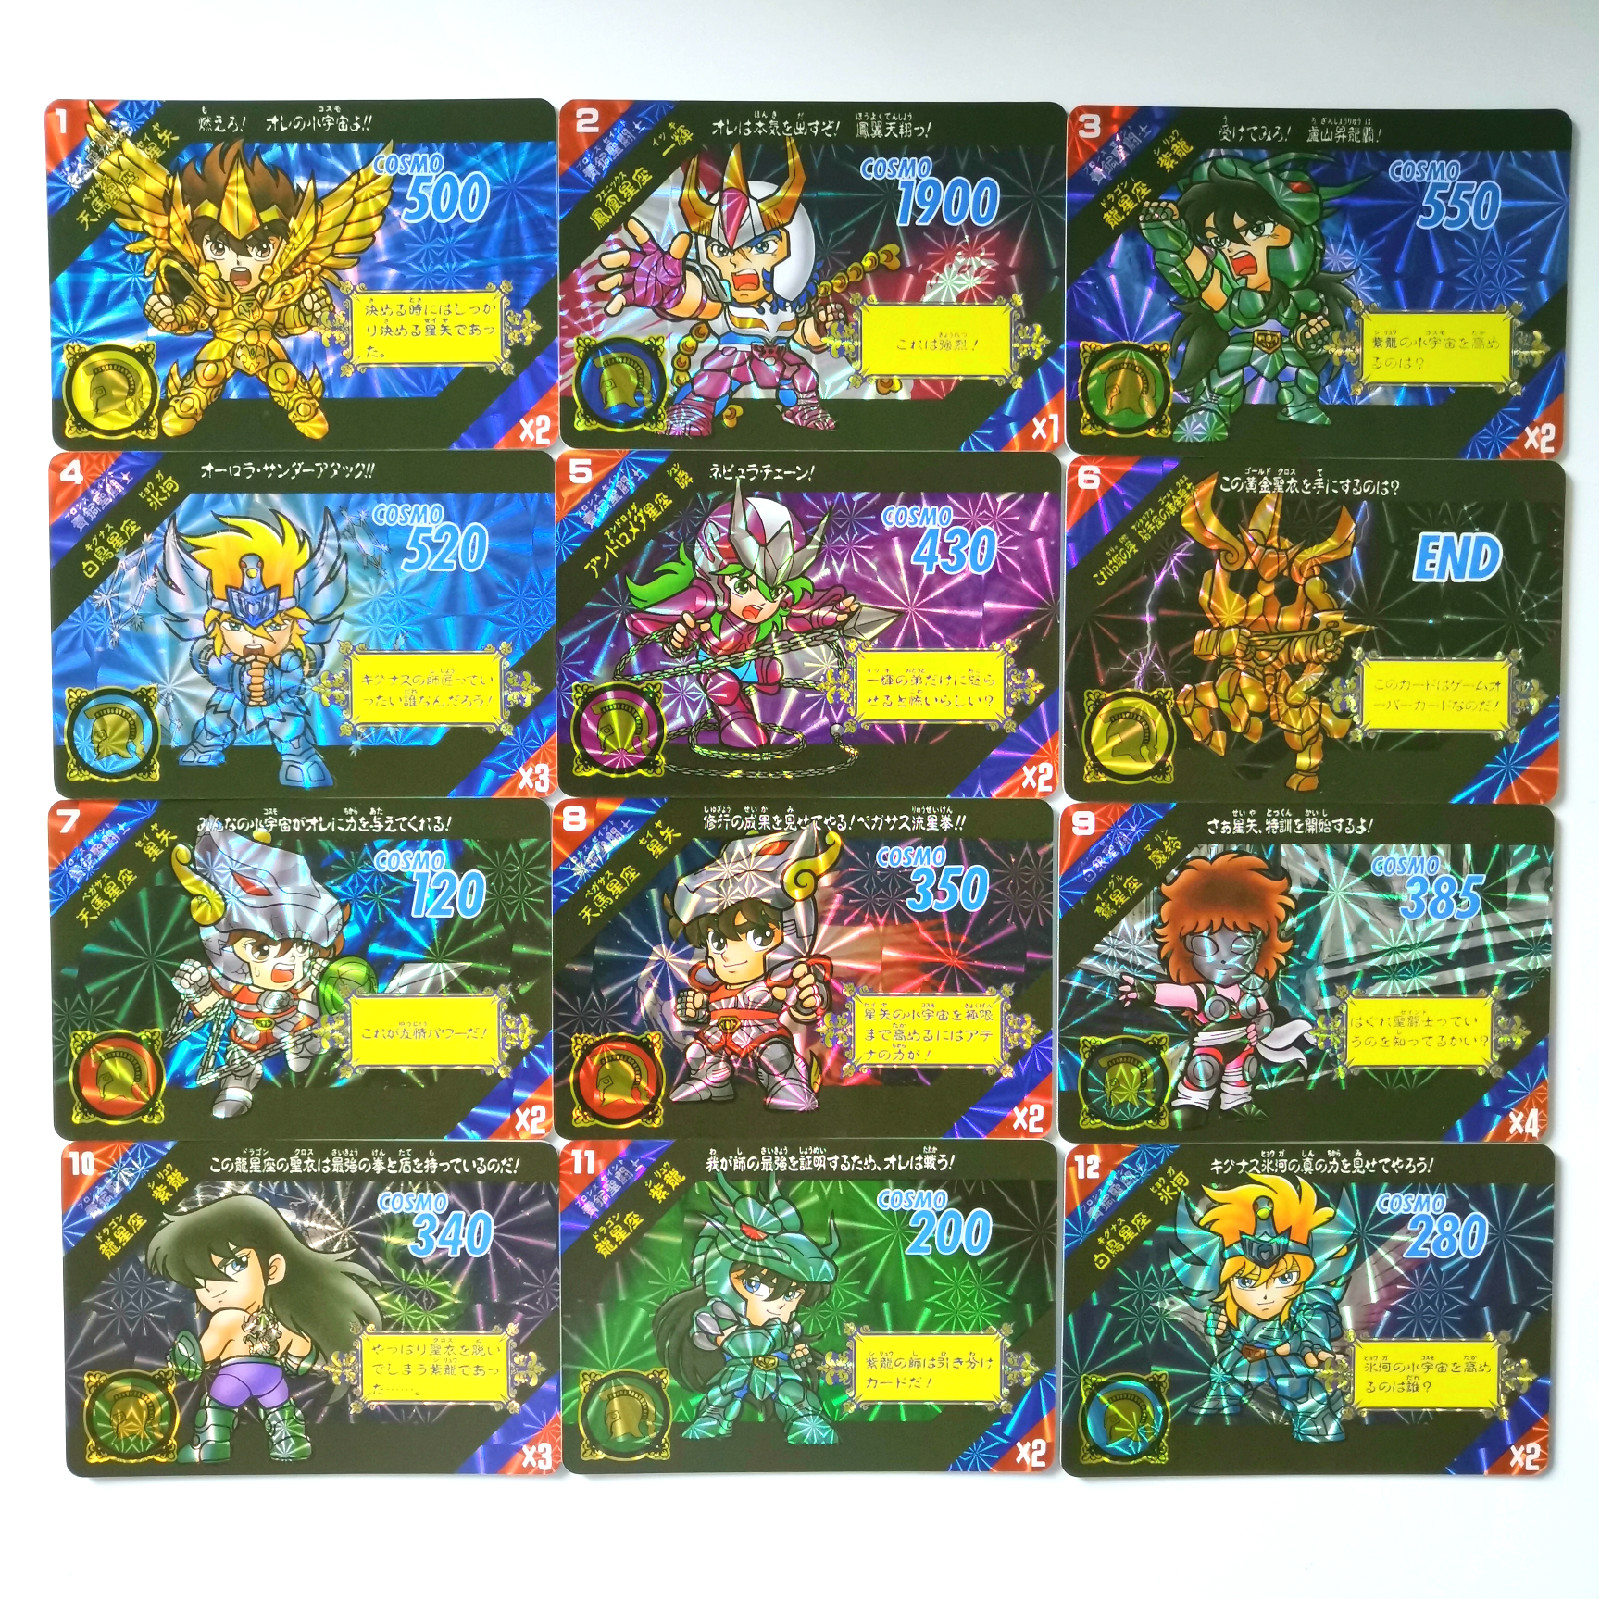 127pcs/set Perfect Replica Of Heaven Saint Seiya Toys Hobbies Hobby Collectibles Game Collection Anime Cards